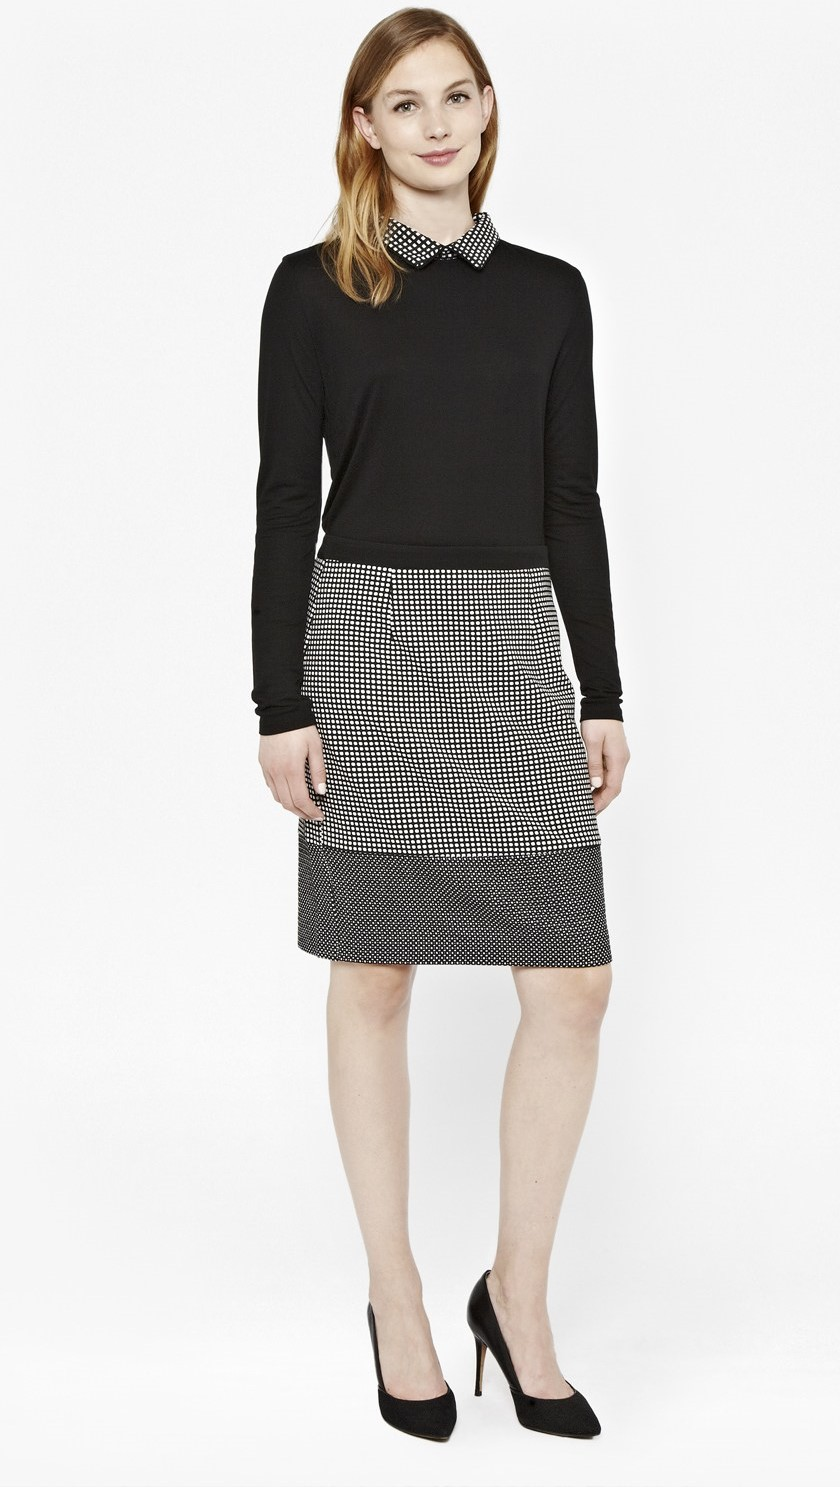 Stylish Pencil Skirt outfit examples contast Polka